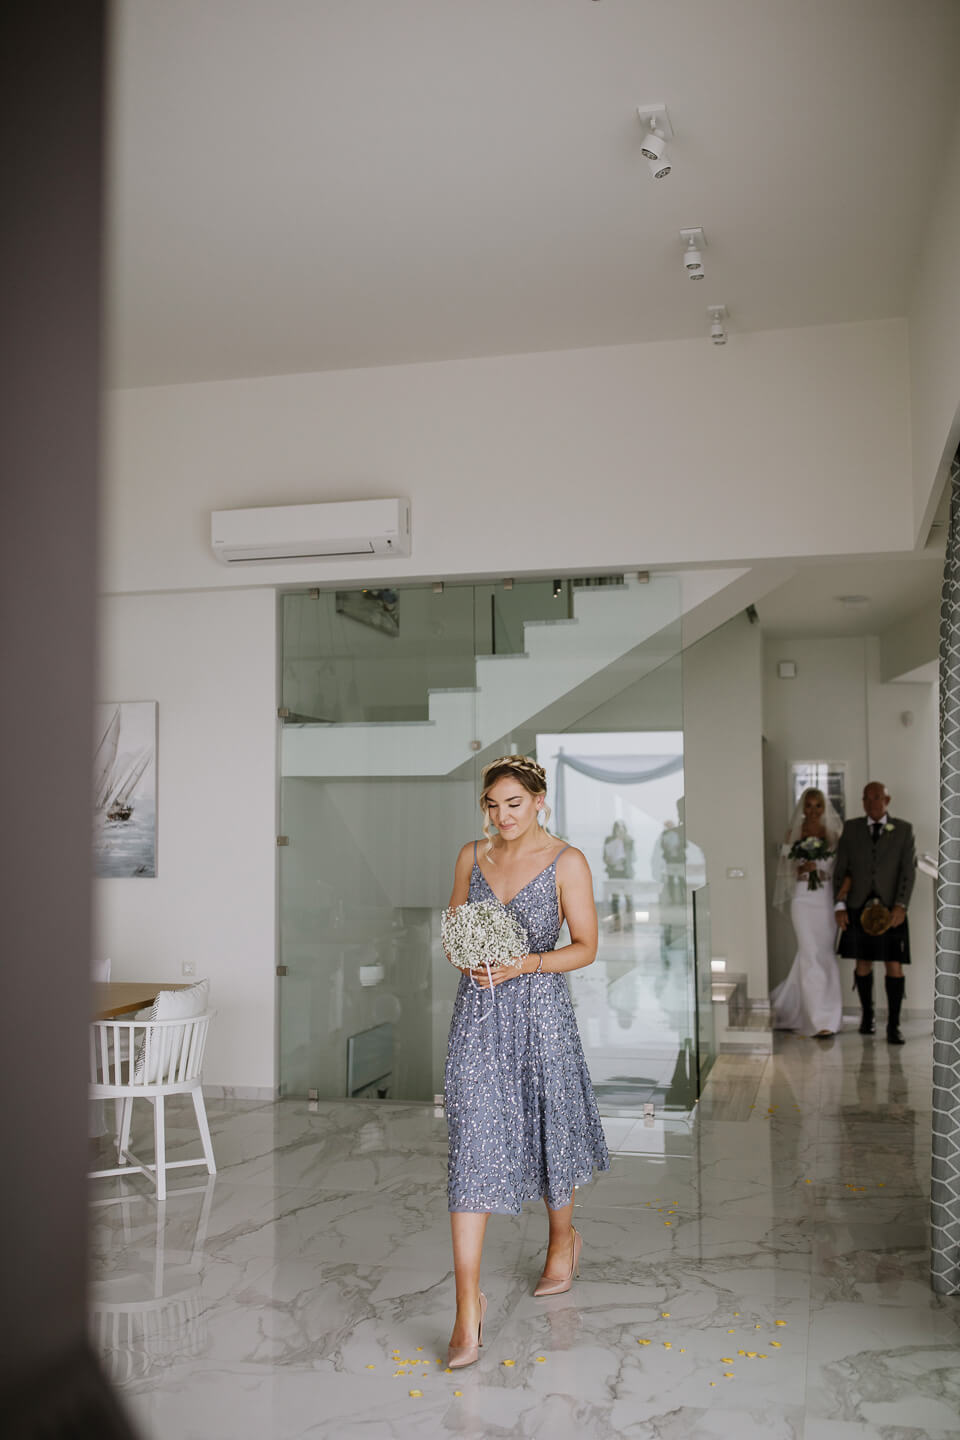 Robert & Tanya Irini Koronaki Professional Wedding Photographer Photography Crete Chania Greece